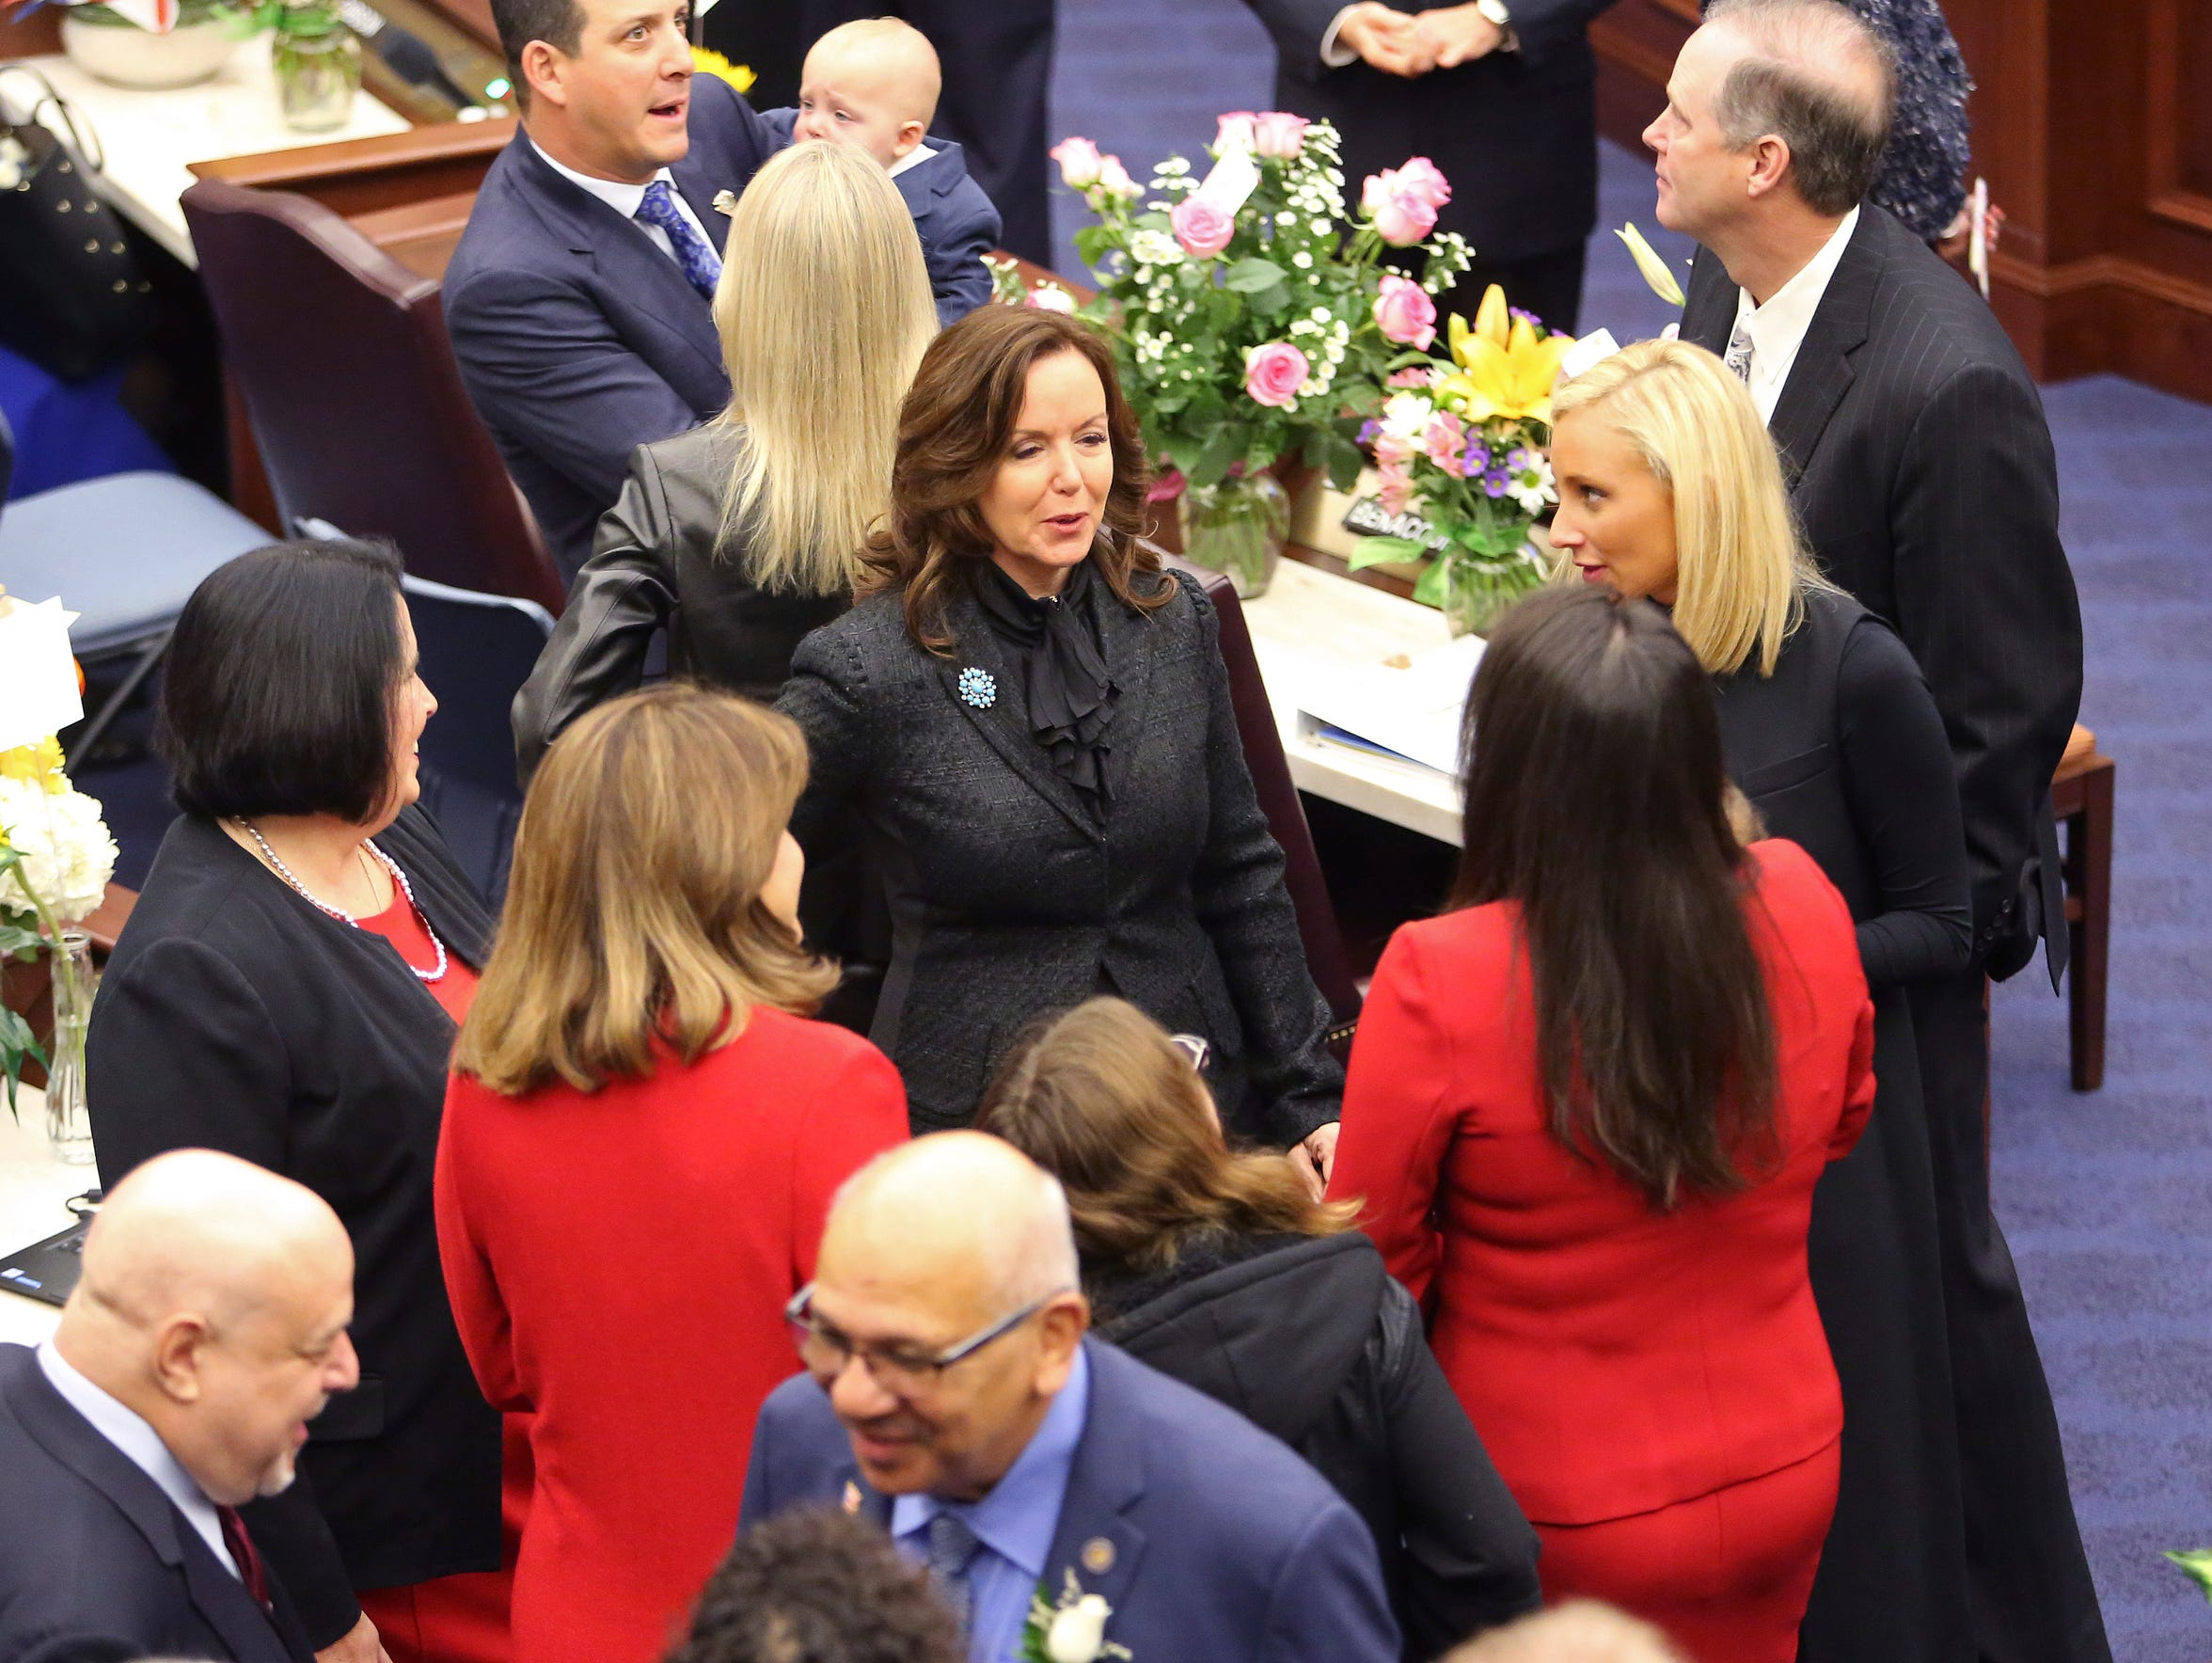 Florida senators meet and greet each other on the floor